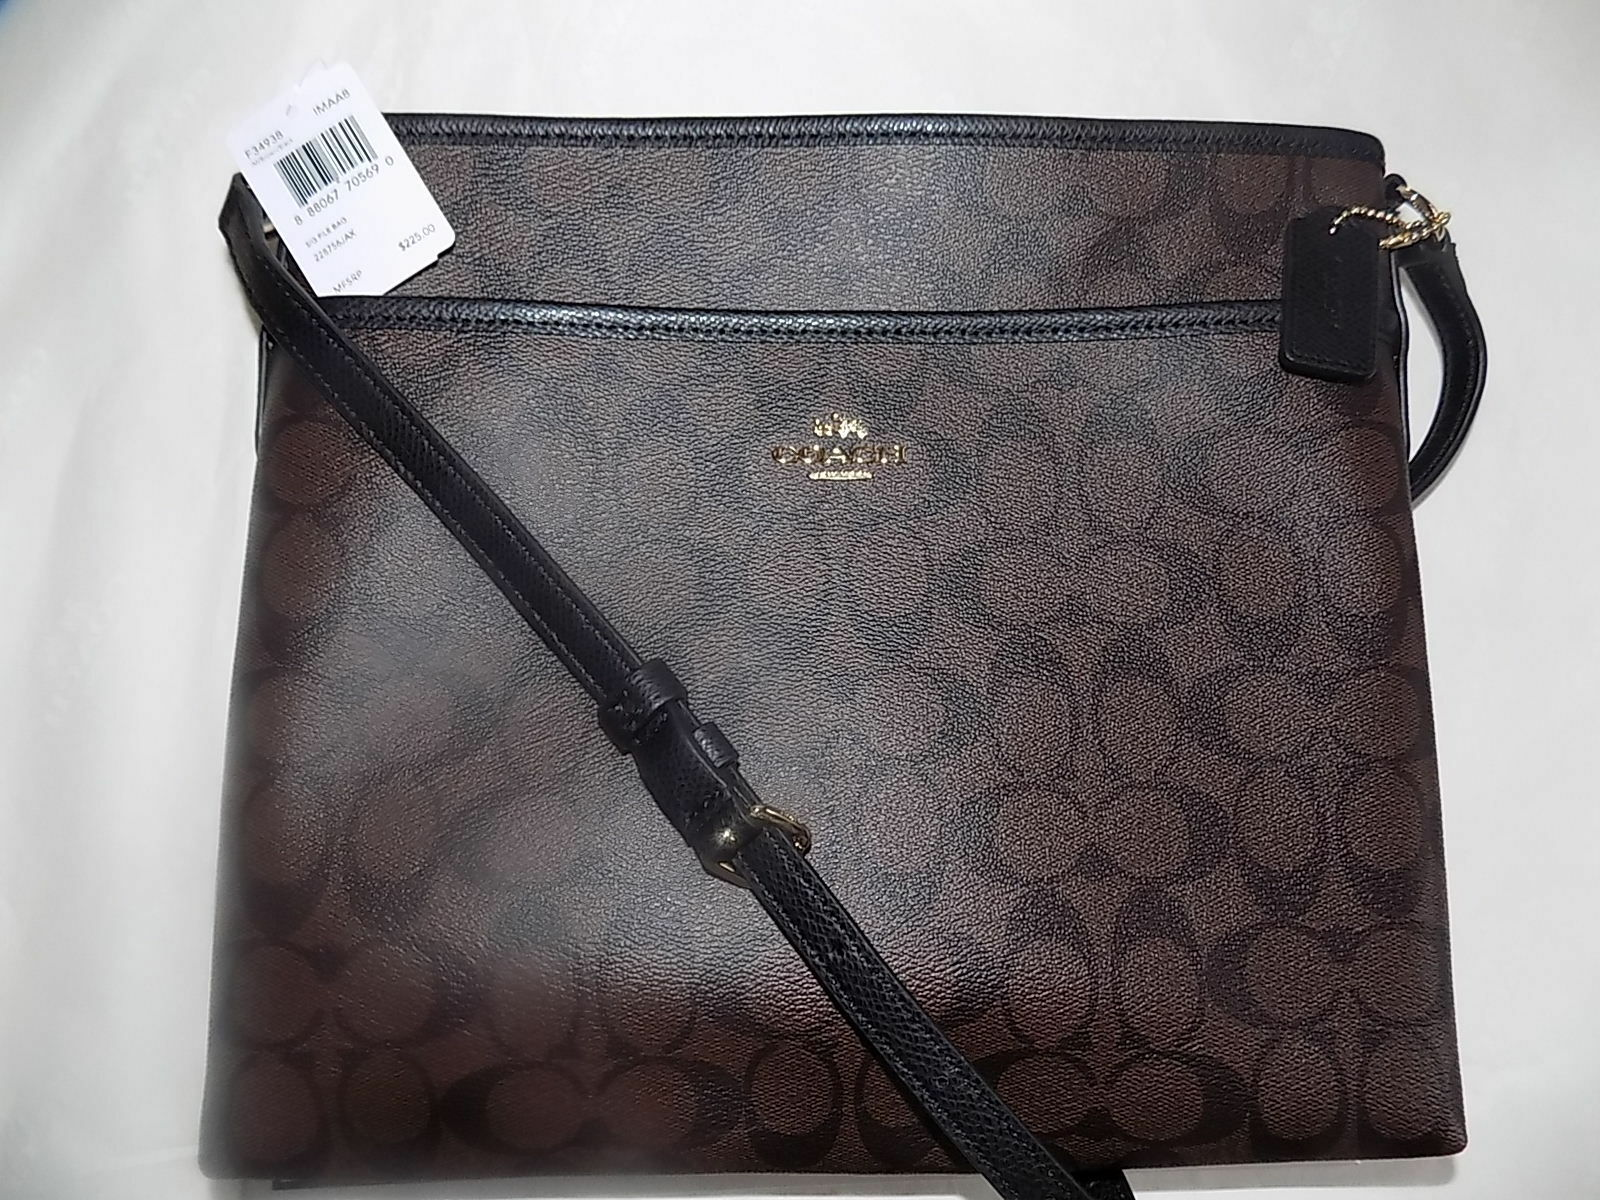 Coach - NWT COACH F34938 Signature File Bag Crossbody Handbag  Brown & Black  $225.00